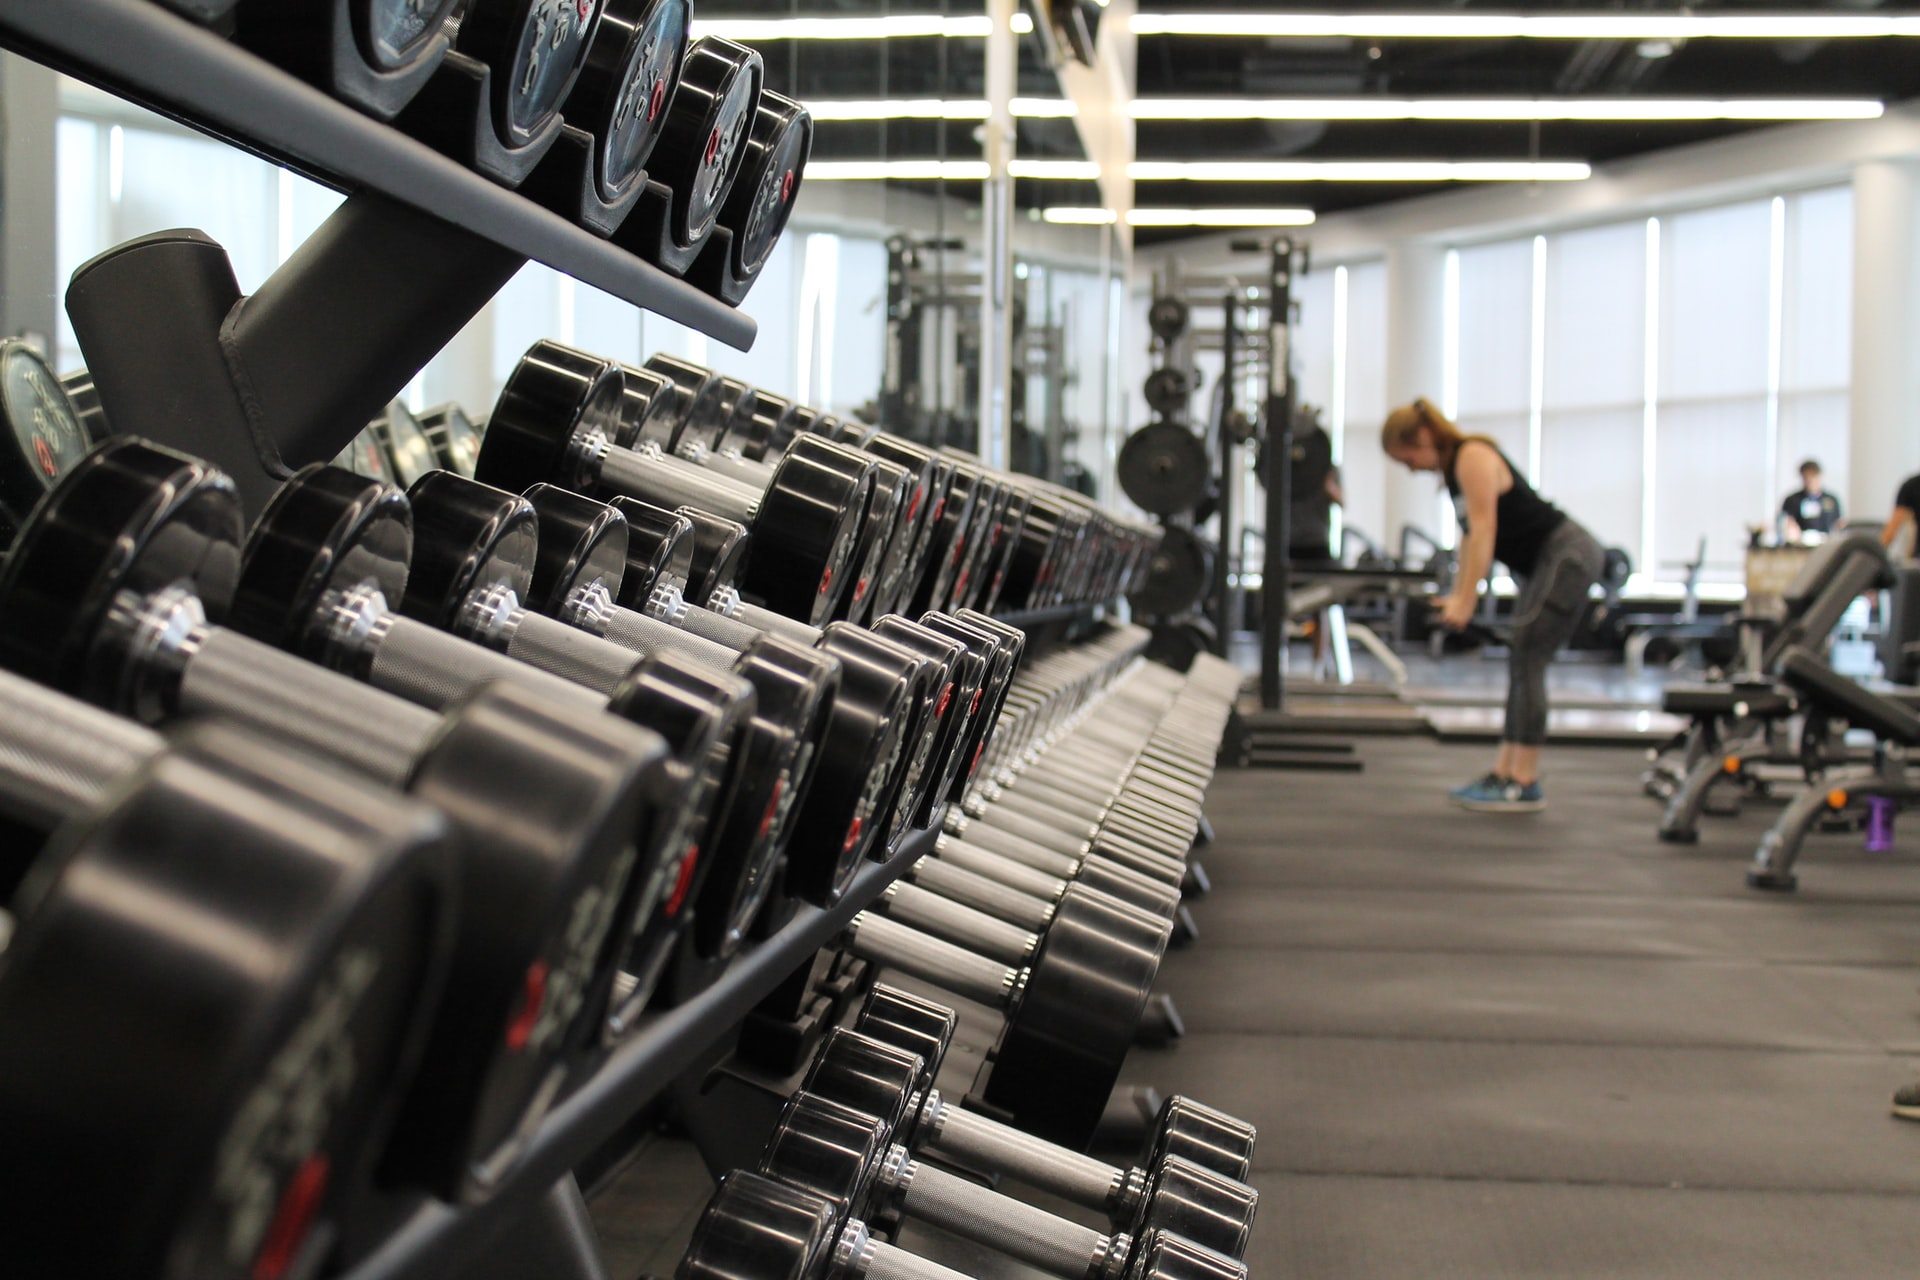 Equipment Fitness Lifestyle Header Image